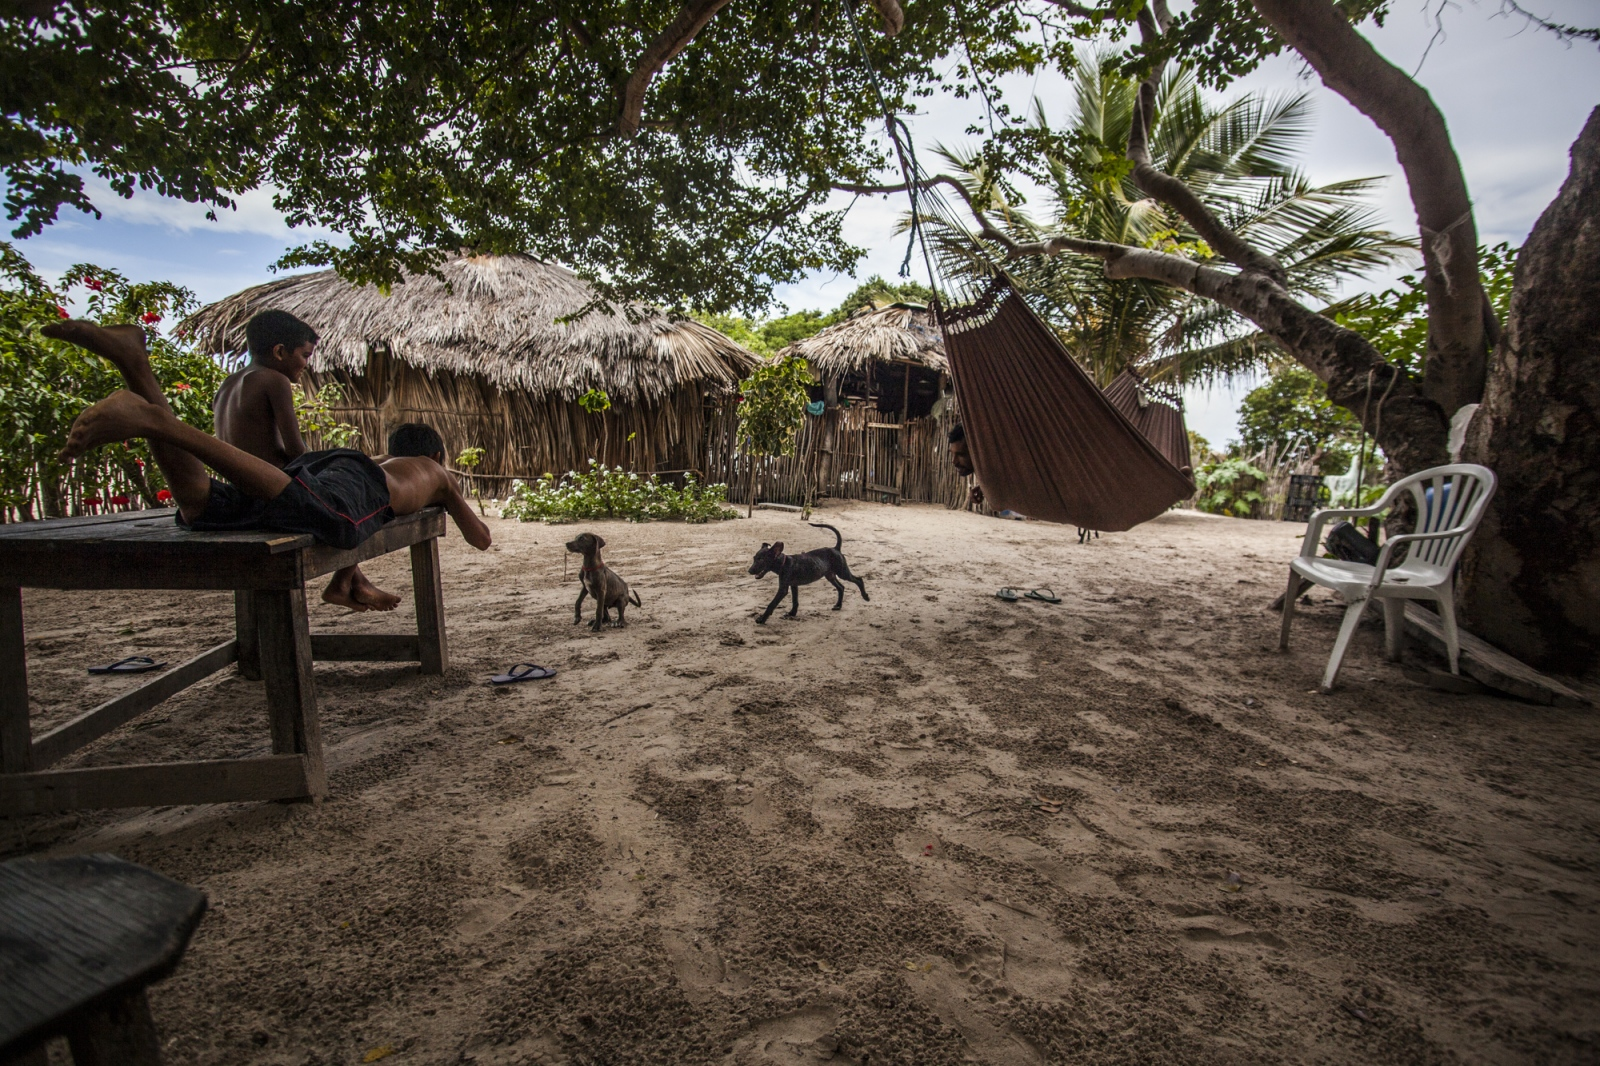 Aldemir Brito, 39, relaxes on the hammock while his son and nephew play with the dogs in the backyard of their house. During the afternoons the children are free to walk around the oasis and the dunes and adults tend to visit each other's houses and socialize.